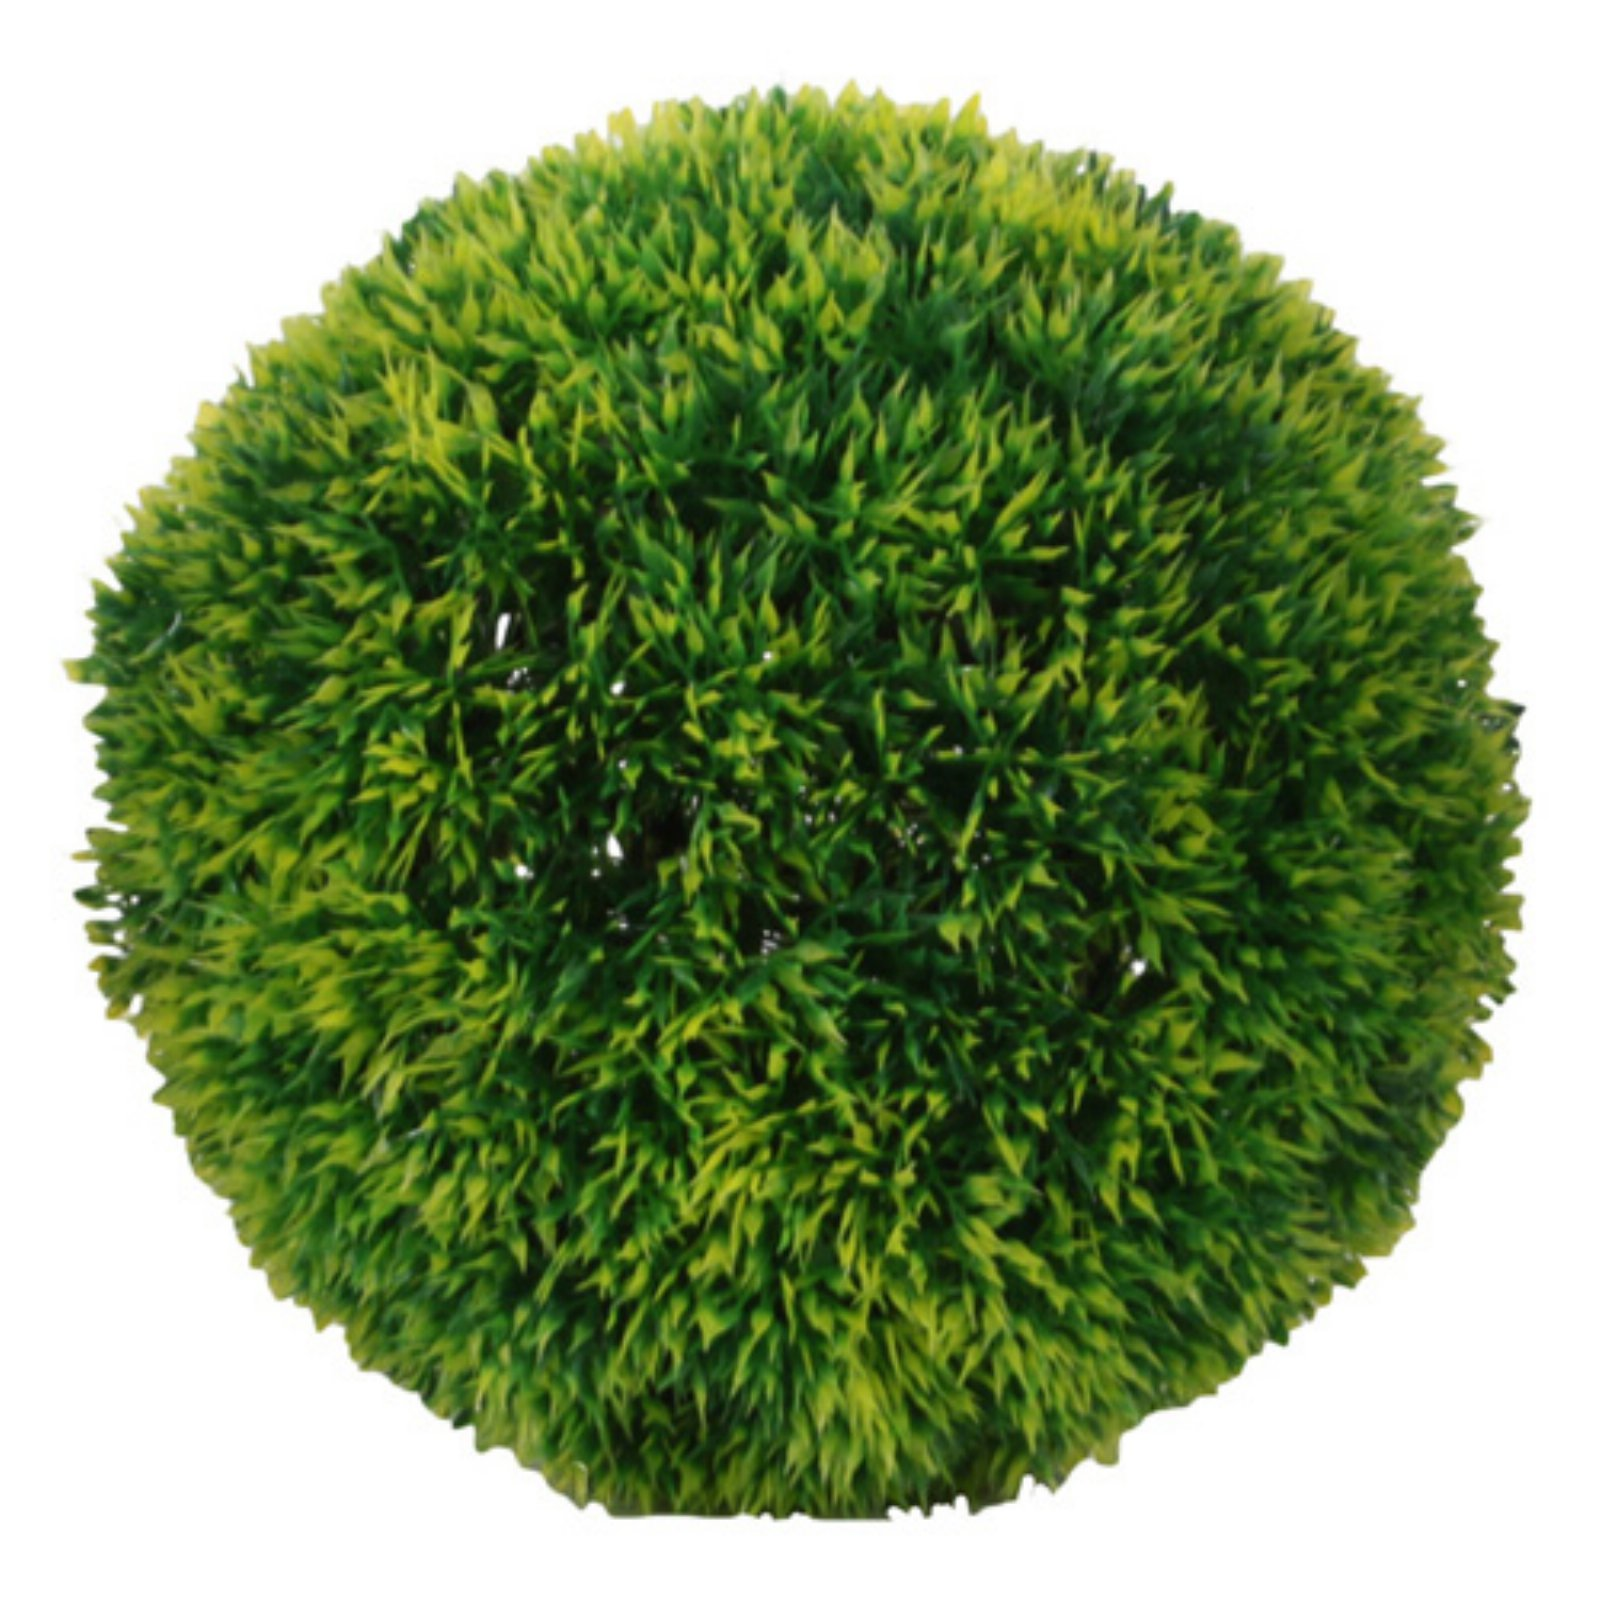 Urban Trends Collection: Polyurethane Topiary, Natural Finish, Green